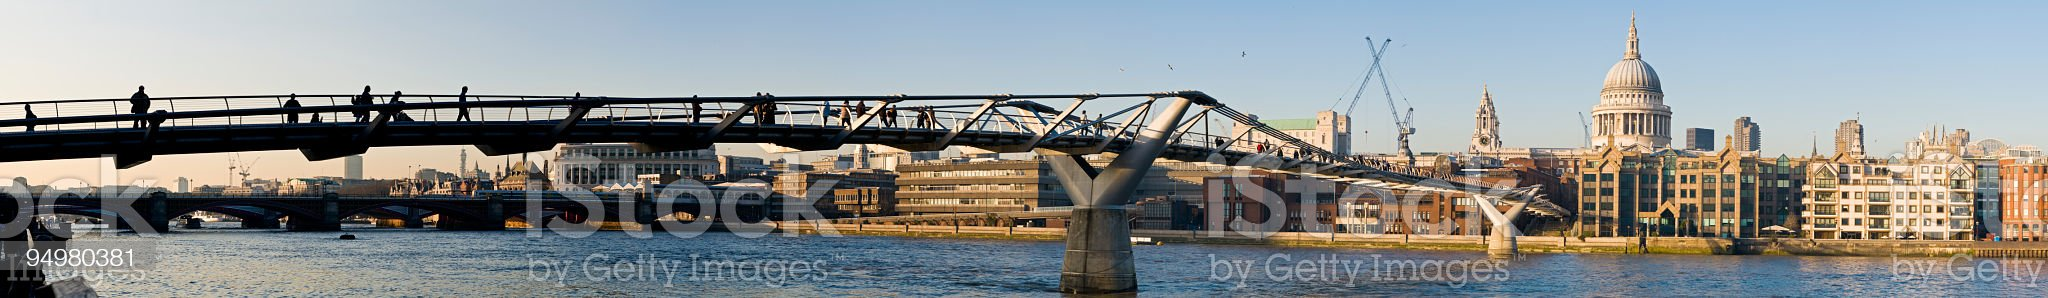 London Millenium Bridge panorama royalty-free stock photo